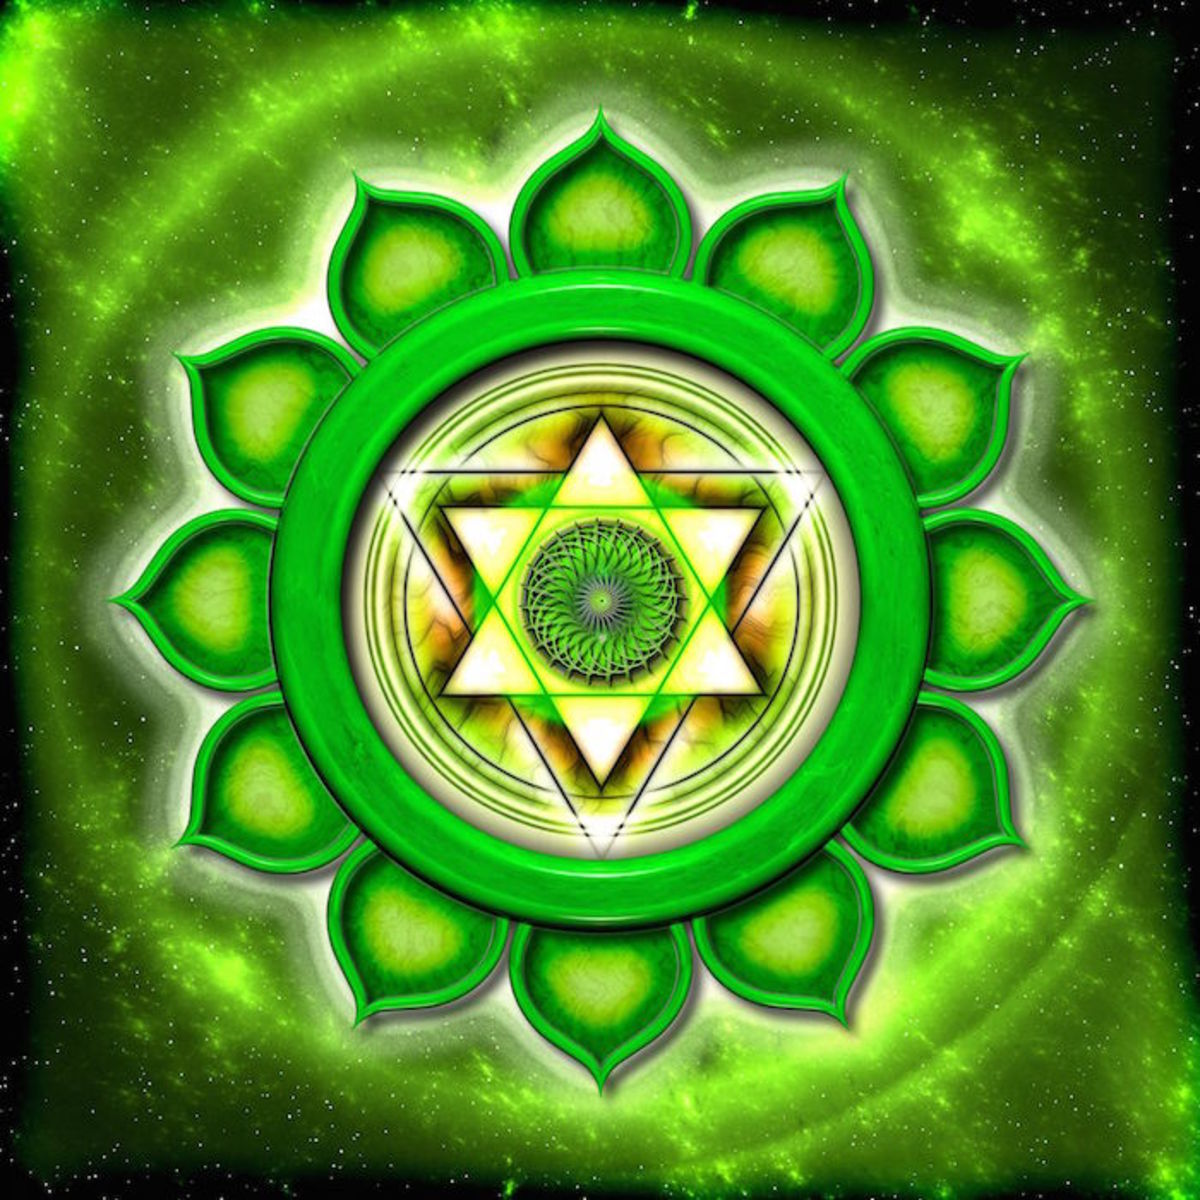 The heart chakra, or Anahata in its original Sanskrit name, colors our life with compassion, love, and beauty. Driven by the principles of transformation and integration, the fourth energy center is said to bridge earthly and spiritual aspirations.